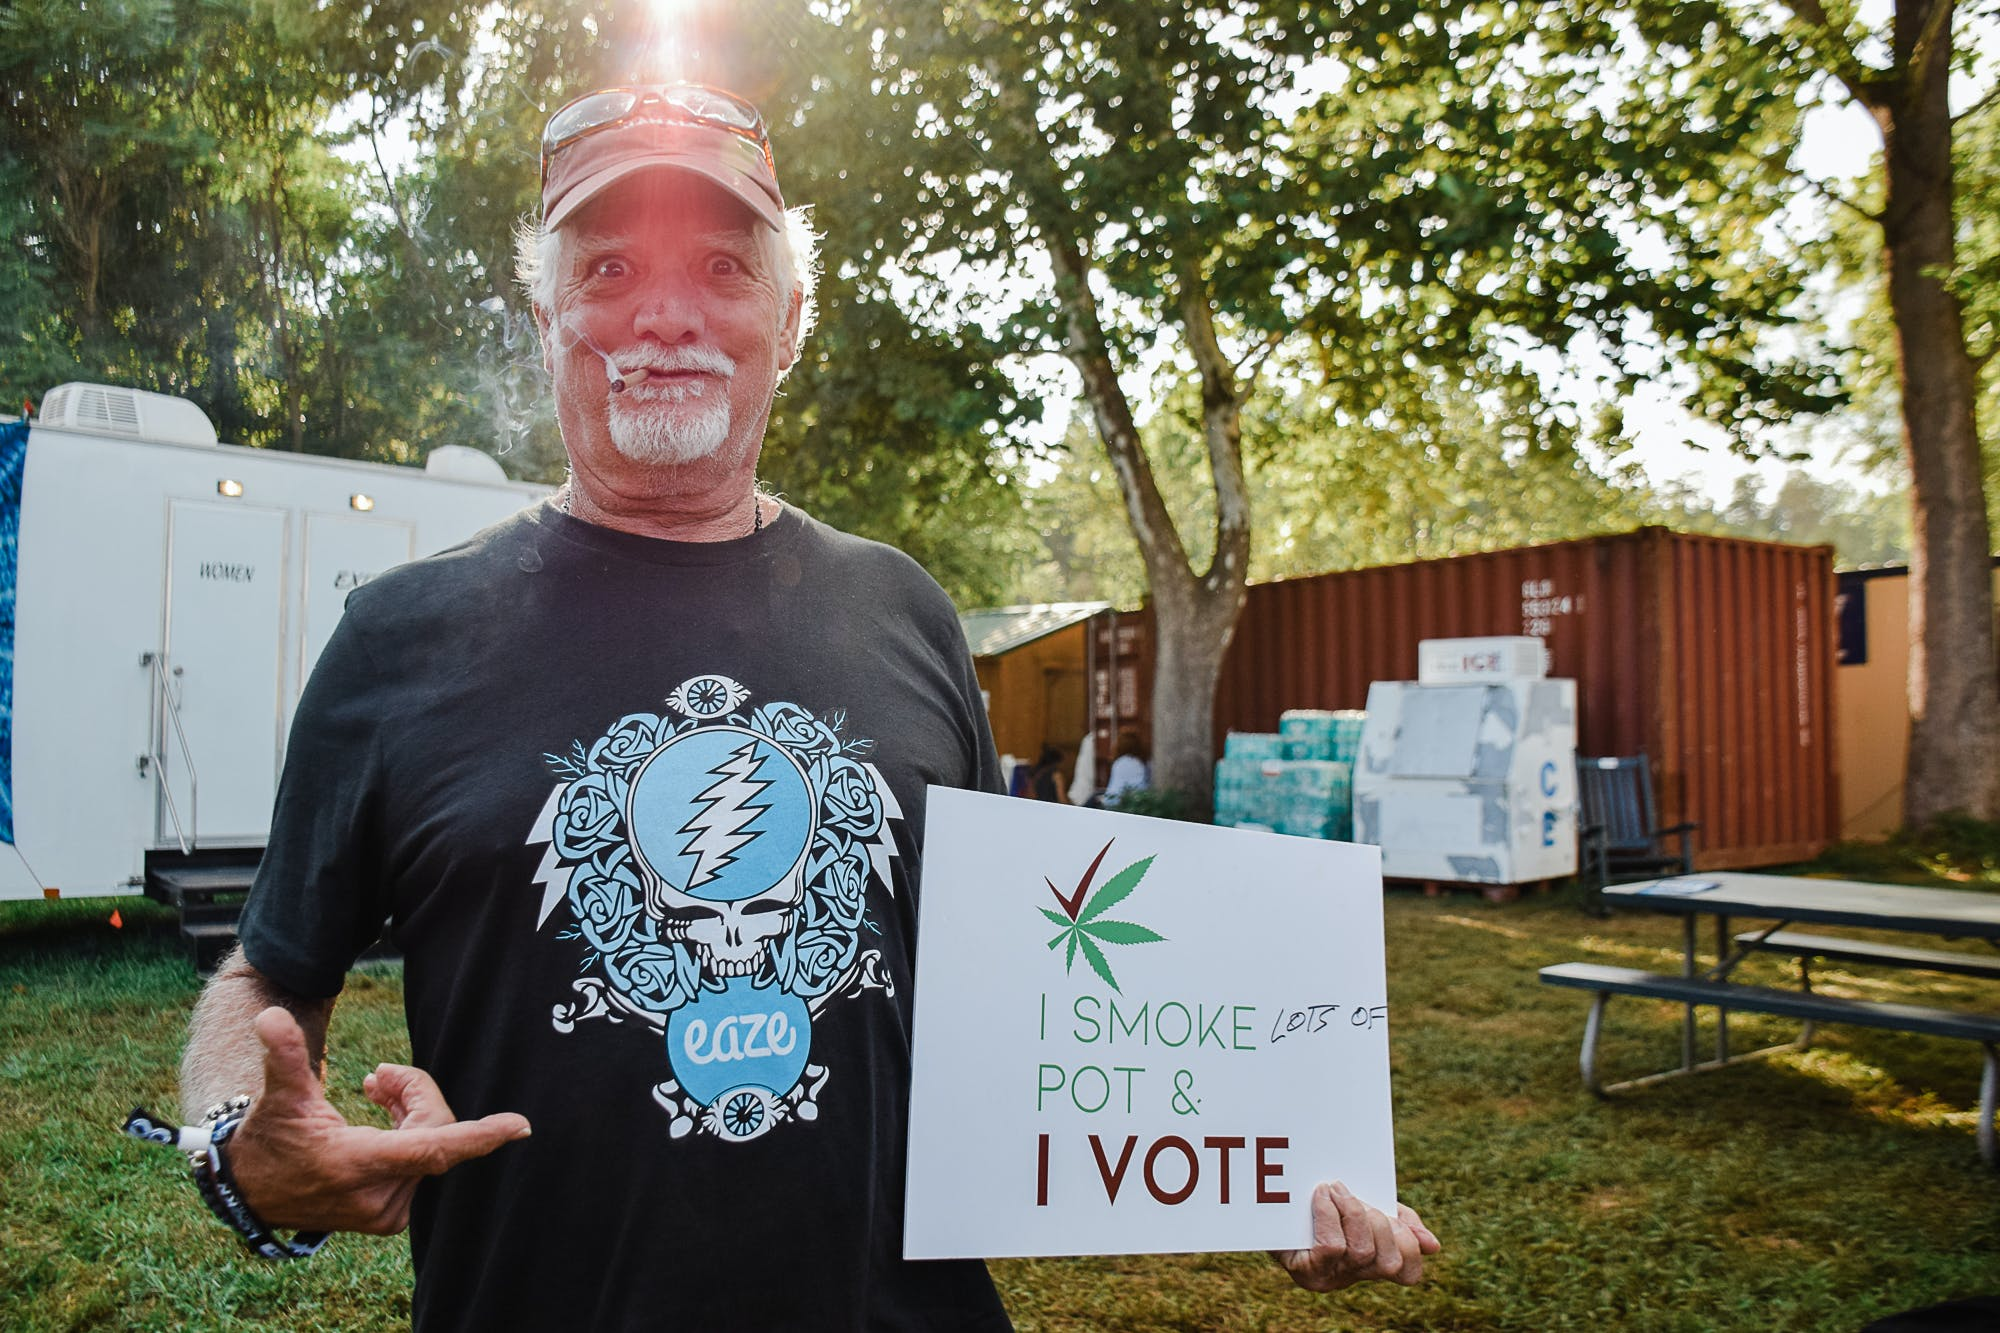 Cheech and Chong Partner with the Cannabis Voter Project to Mobilize Young Voters 6 Cheech and Chong, the Cannabis Voter Project Want You to Vote This November